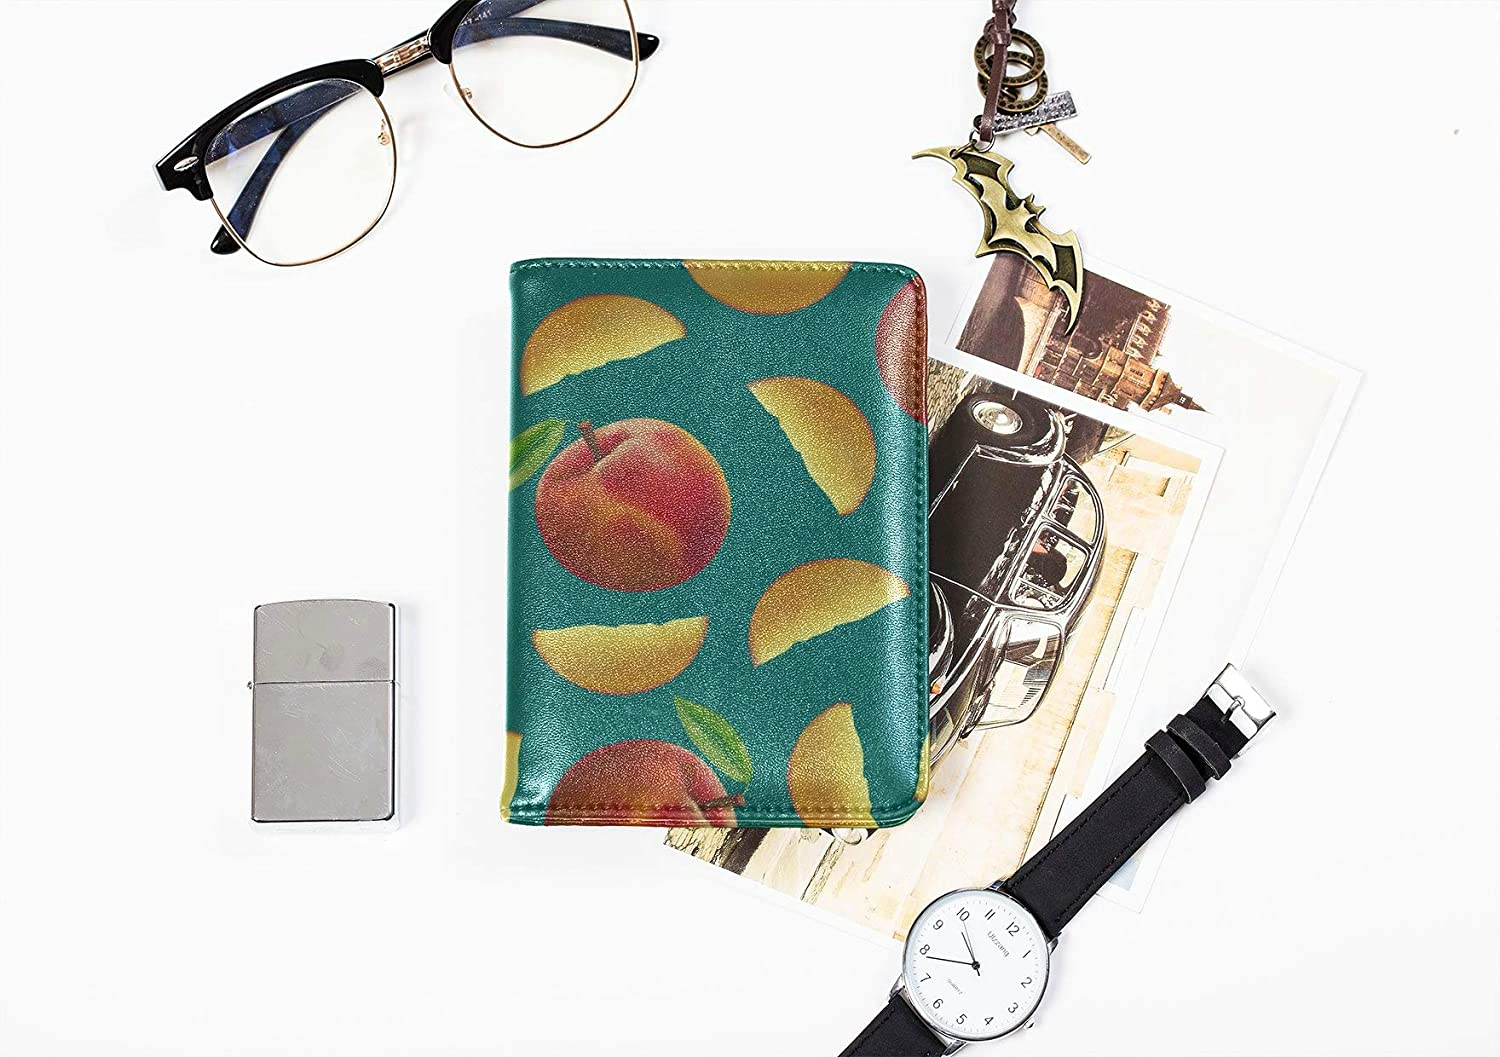 Color Passport Cover Cute Summer Creative Fruit Nectarine Men Passport Cover Multi Purpose Print Passport Case Kids Travel Wallets For Unisex 5.51x4.37 Inch